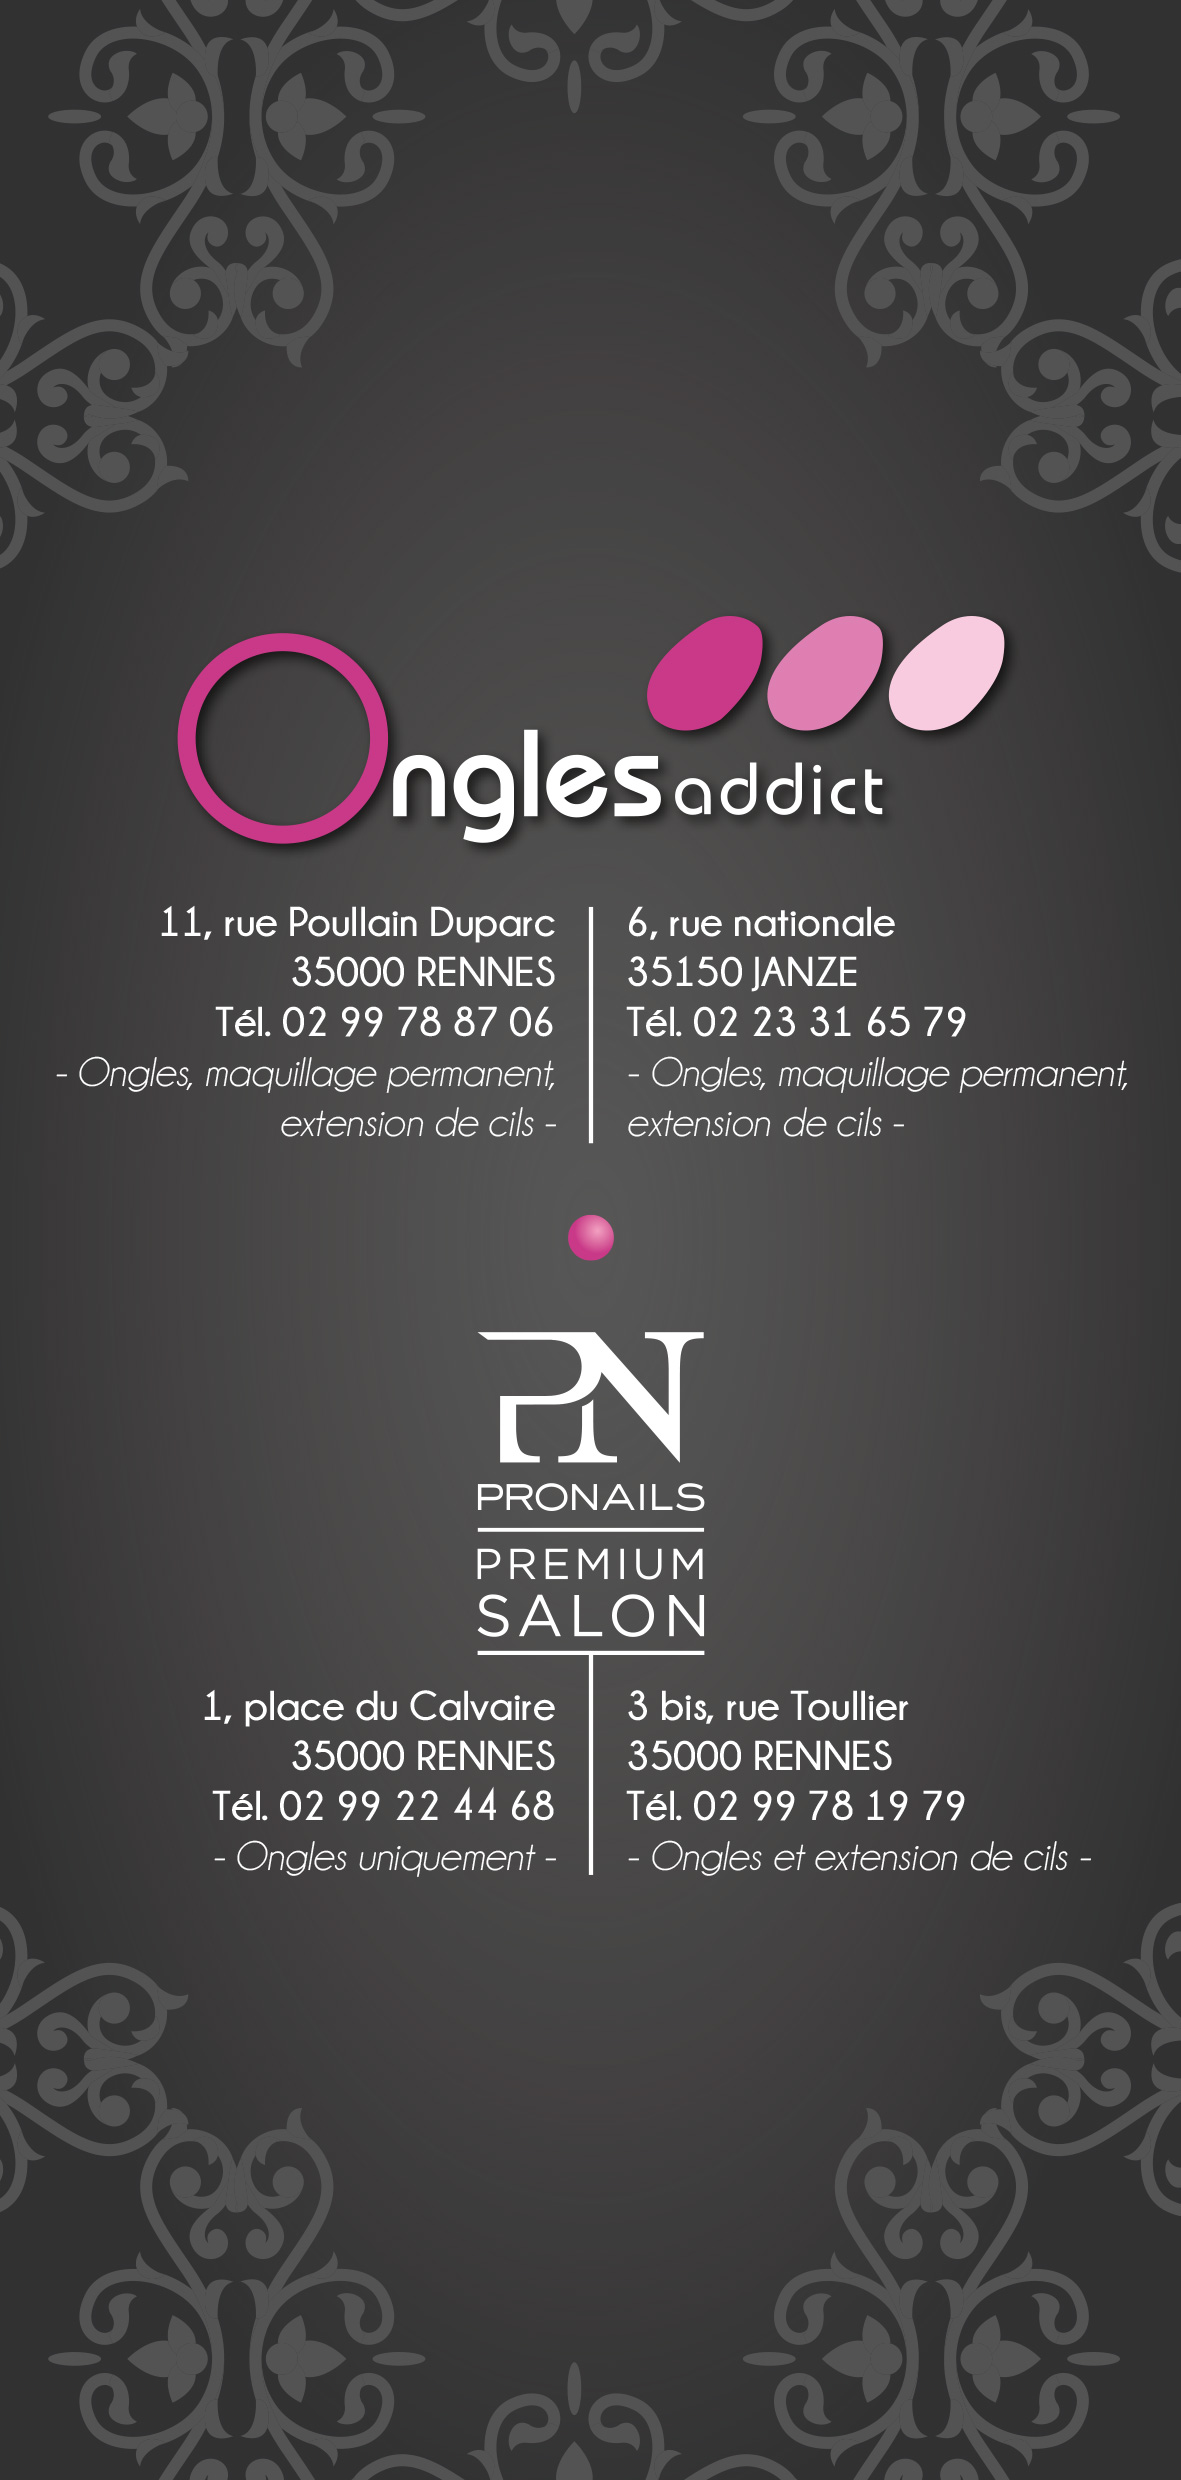 ongles-addict-flyer1-1